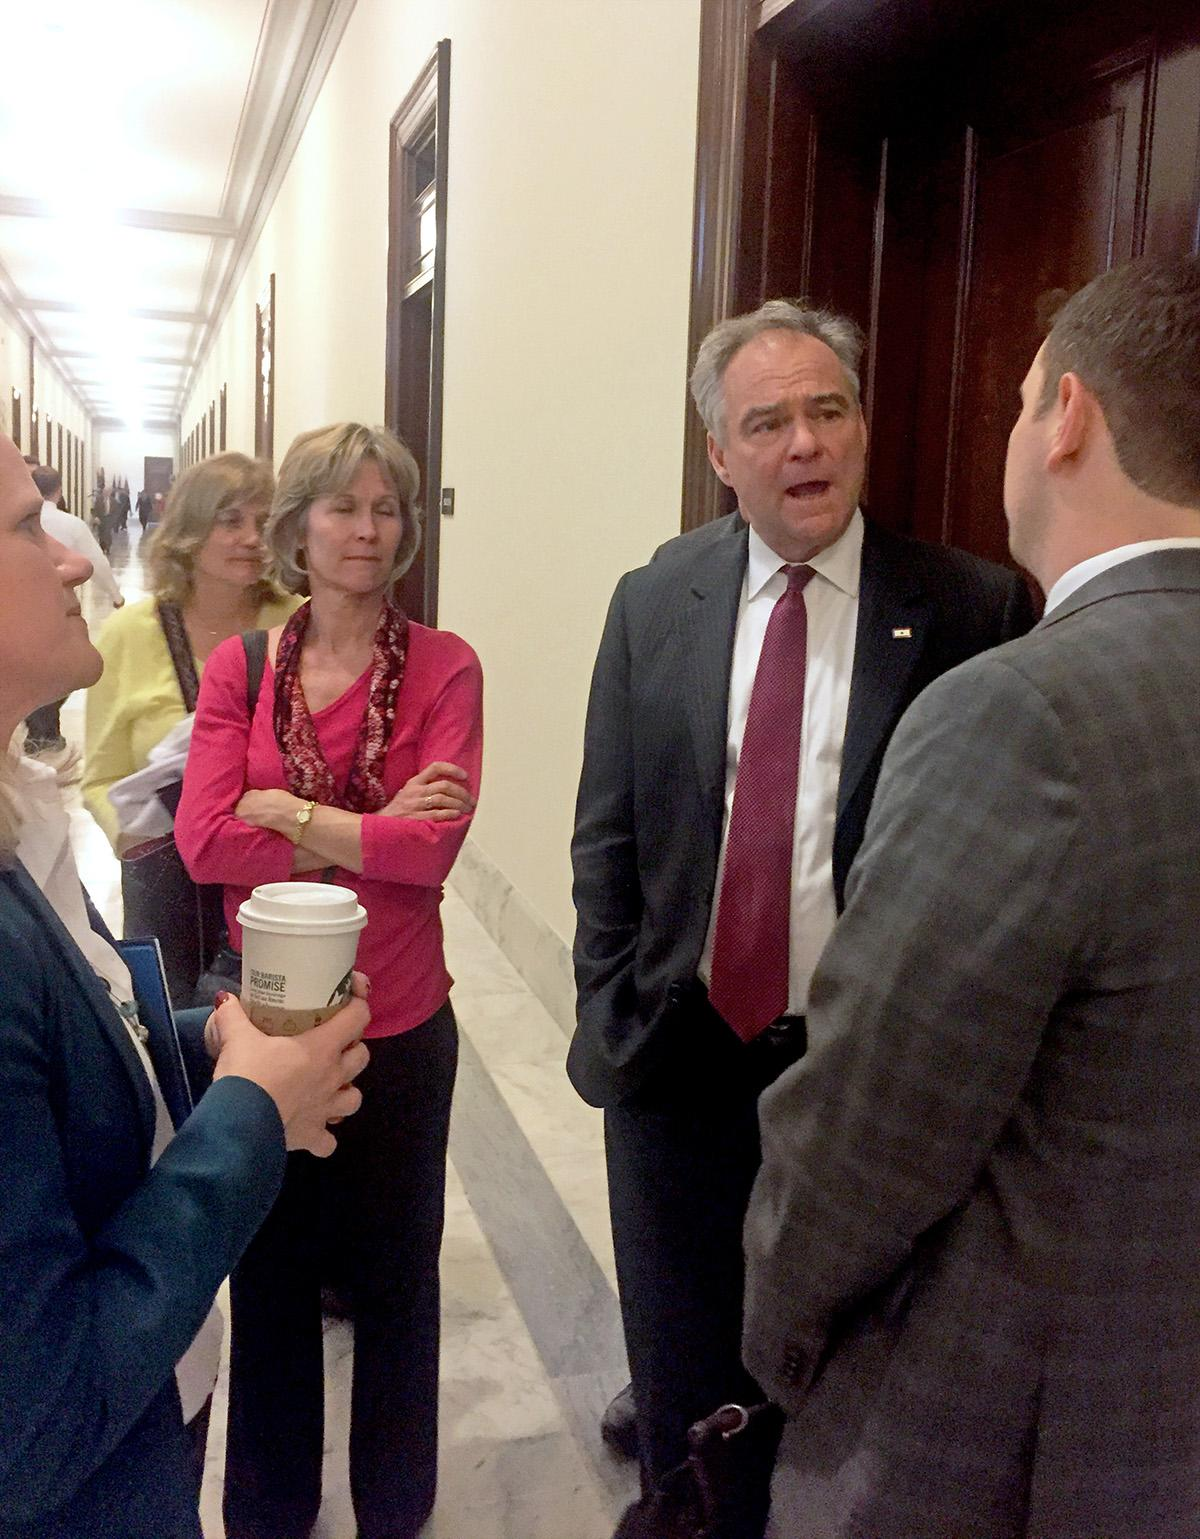 During their visit to Capitol Hill, the Holy Trinity parishioners encountered Sen. Tim Kaine